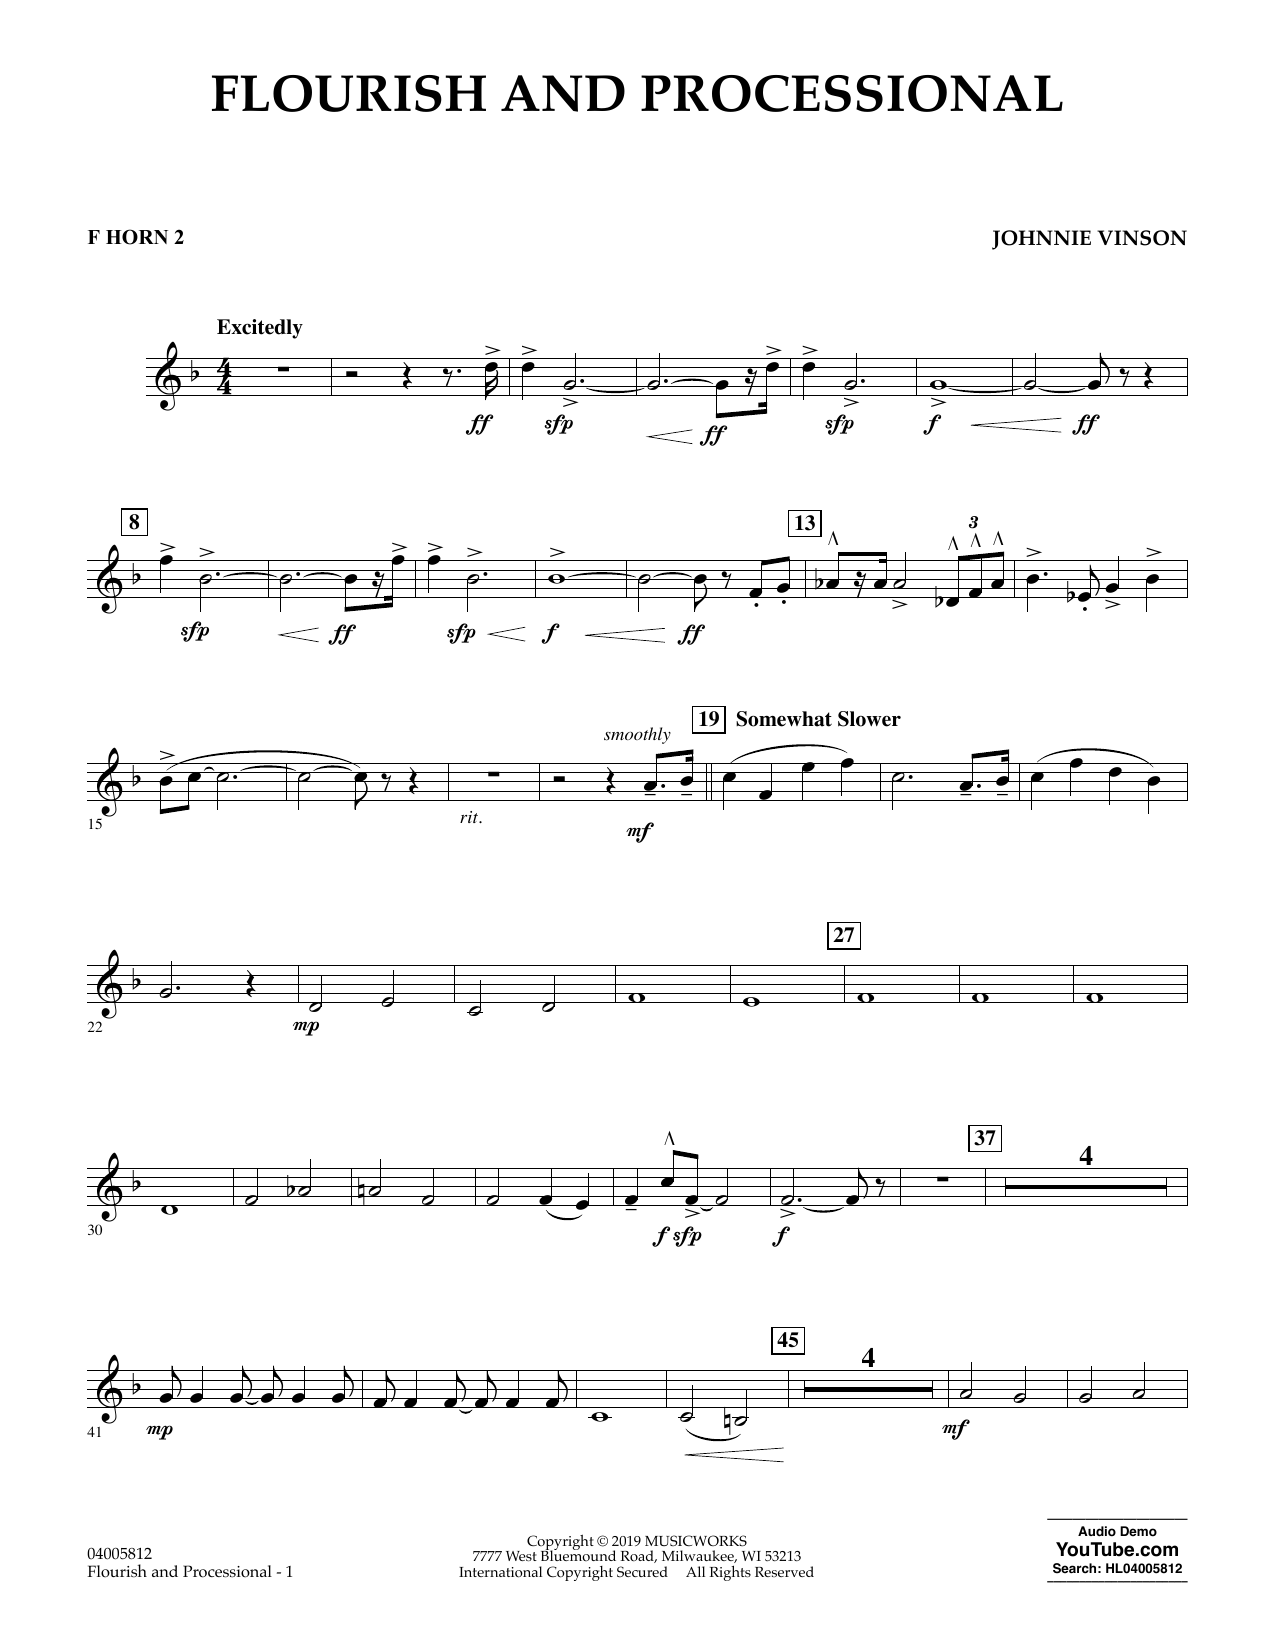 Johnnie Vinson Flourish and Processional - F Horn 2 sheet music preview music notes and score for Concert Band including 2 page(s)